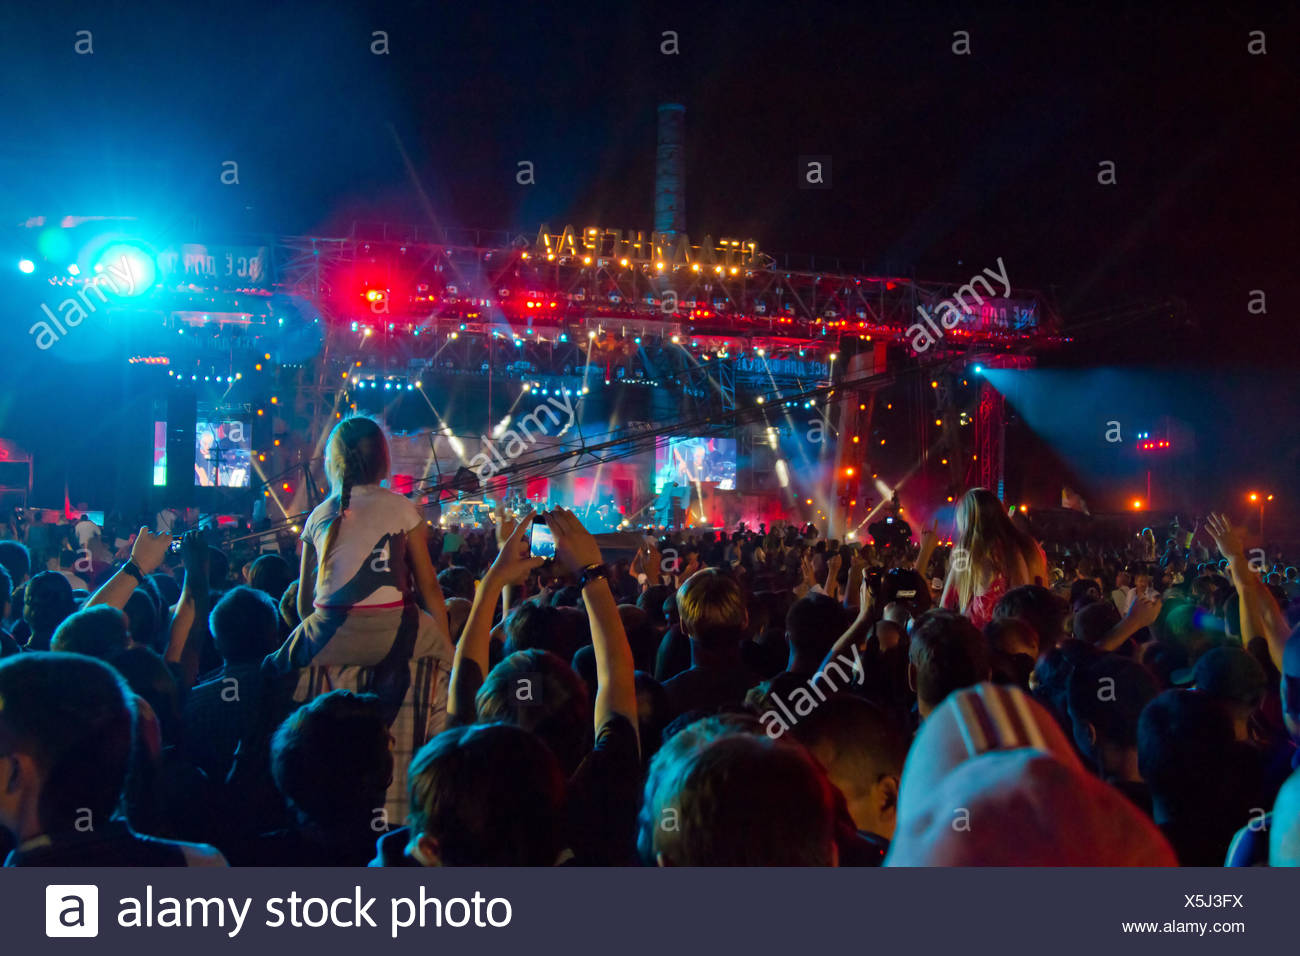 fans of the rock in the crowd on a tank shows Stal - Stock Image